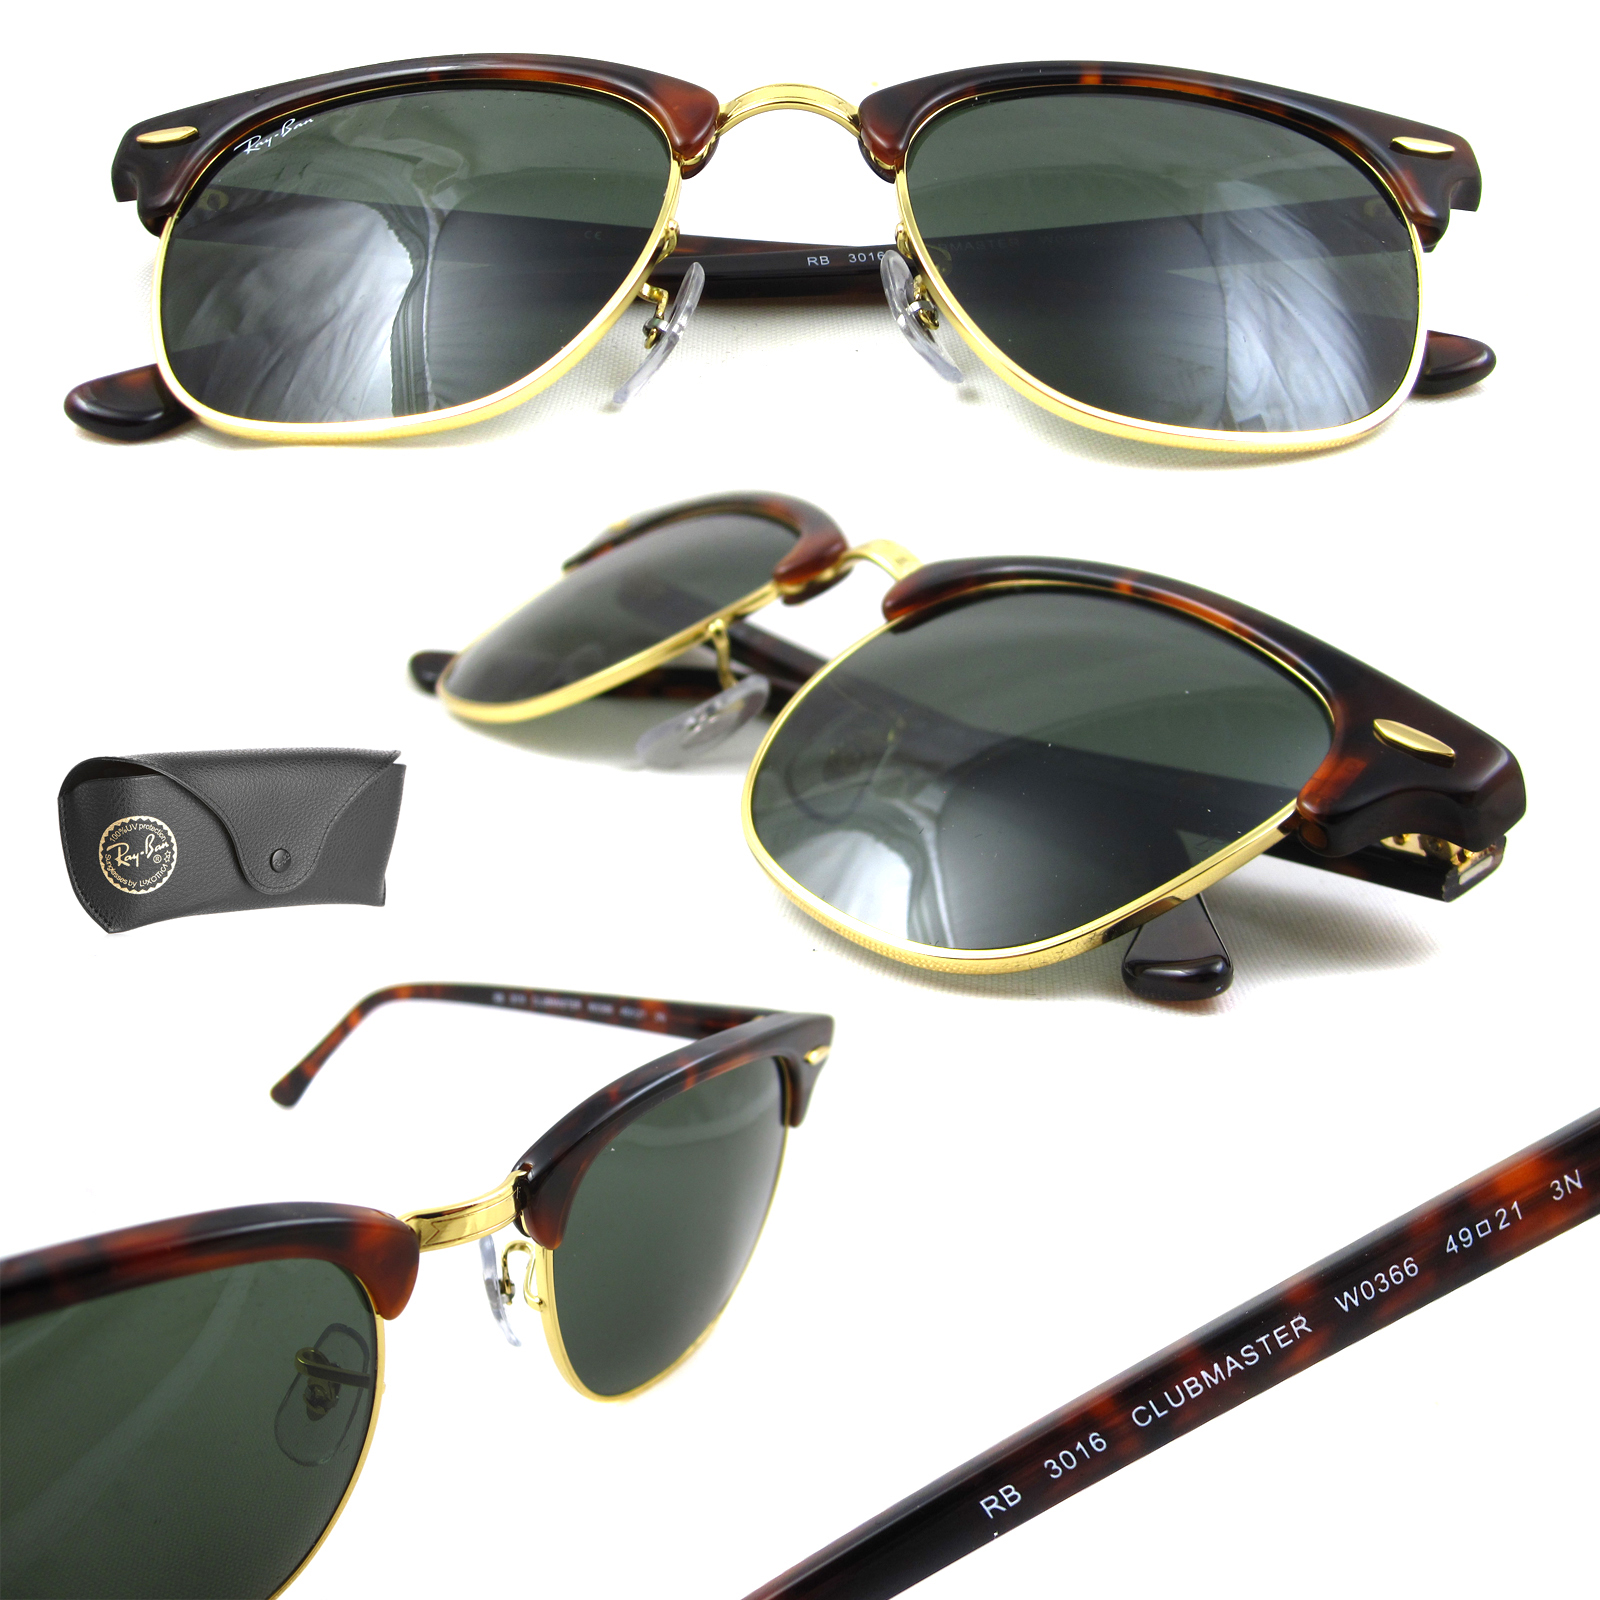 ab41055082df Ray-Ban Sunglasses Clubmaster 3016 W0366 Havana Green G-15 Large 51mm